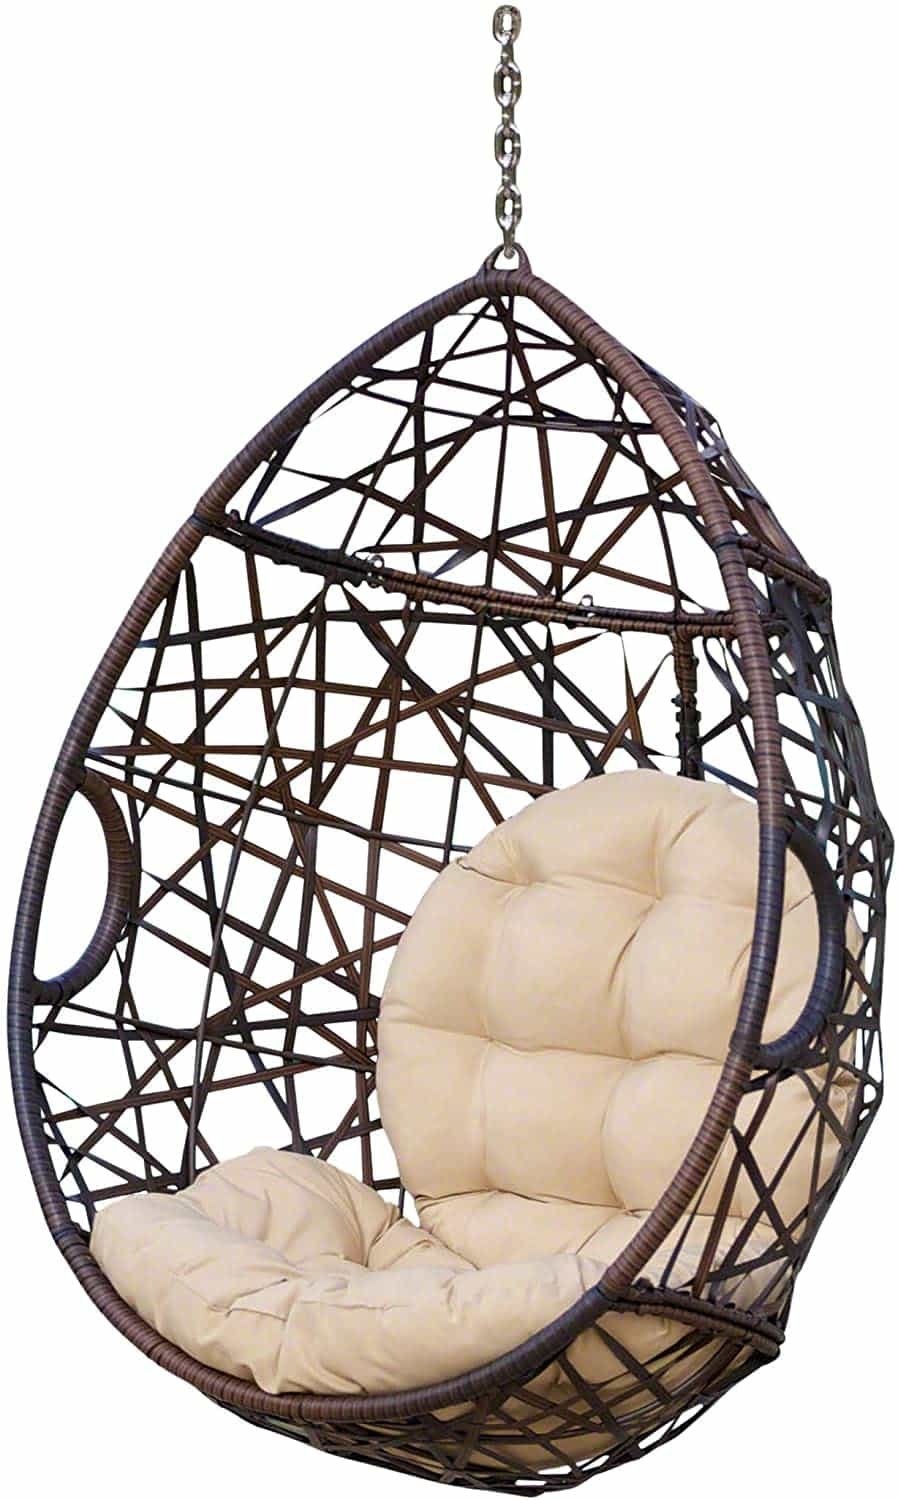 Christopher Knight Home Tear Drop Hanging Chair